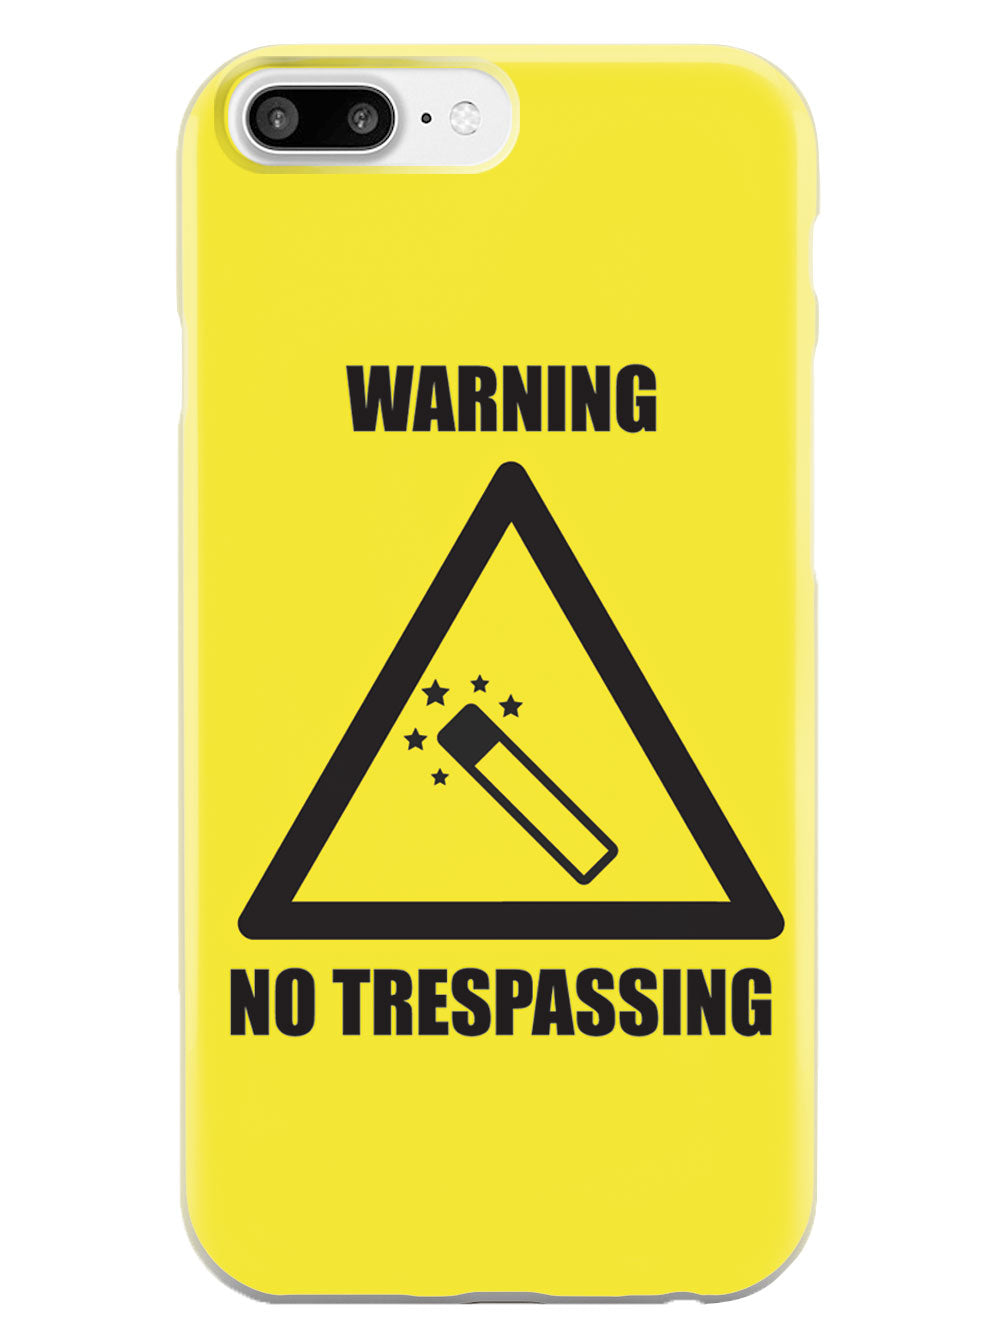 Wand - No Trespassing - White Case